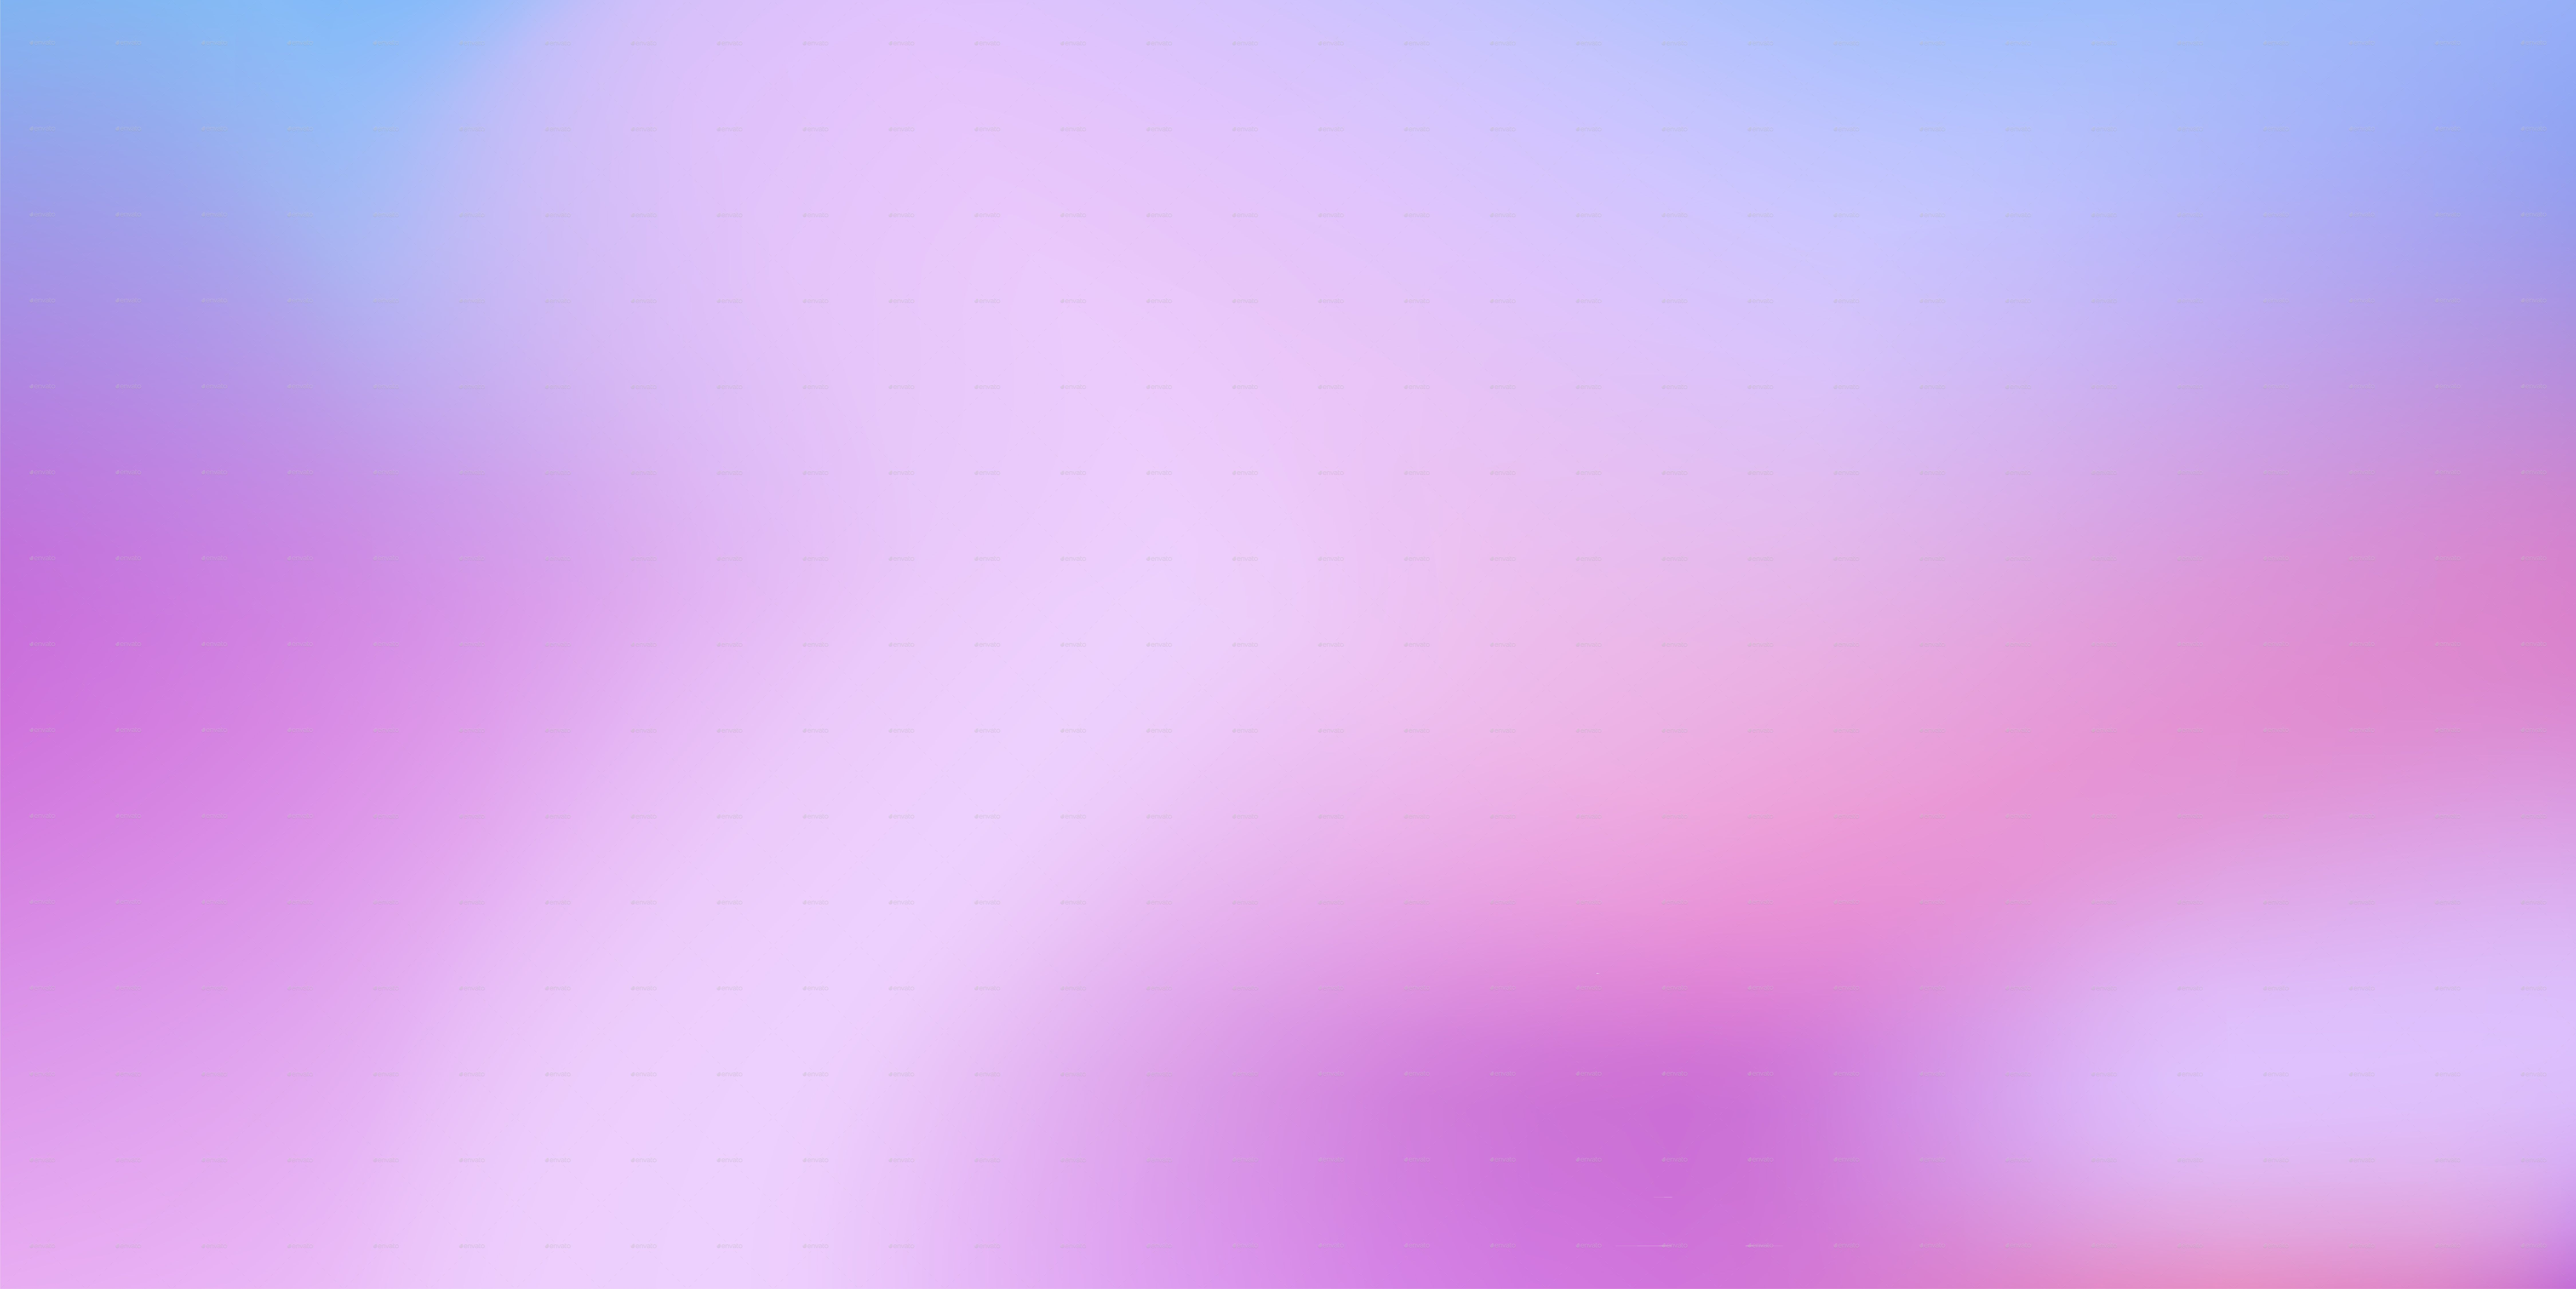 Blurred Abstract Background Ad Blurred Affiliate Abstract Background Ombre Wallpapers Rainbow Wallpaper Purple Ombre Wallpaper